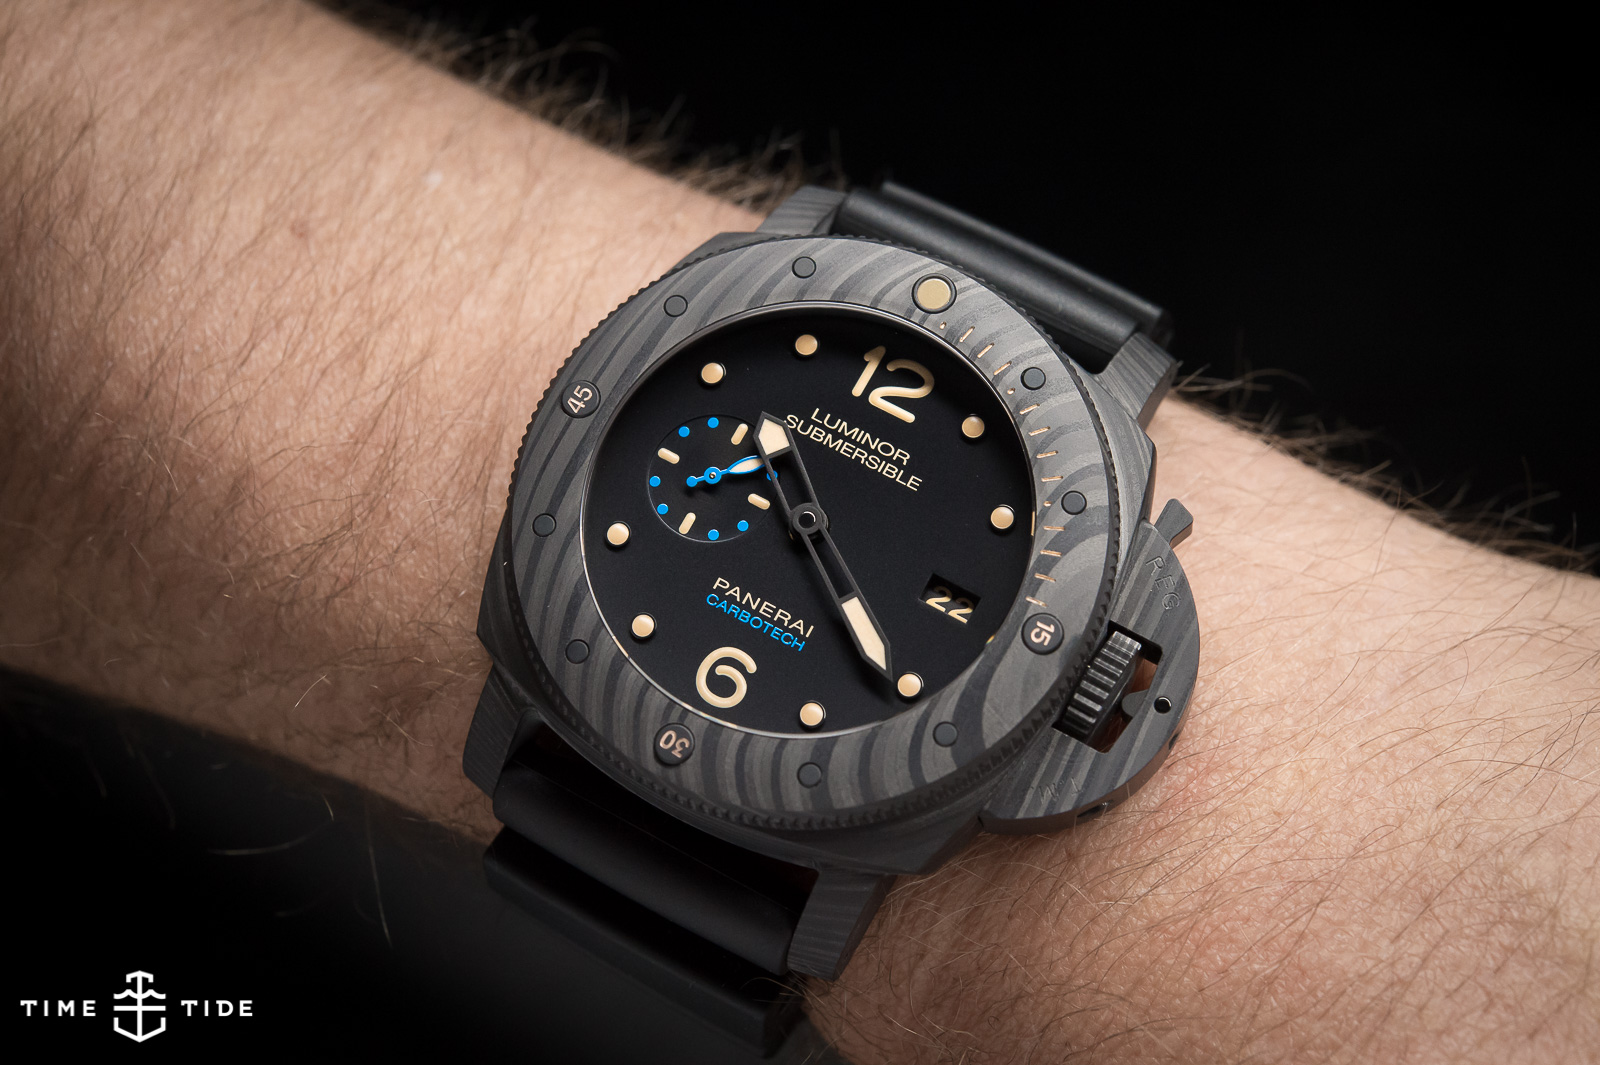 Panerai Submersible 1950 Carbotech Pam00616 Hands On